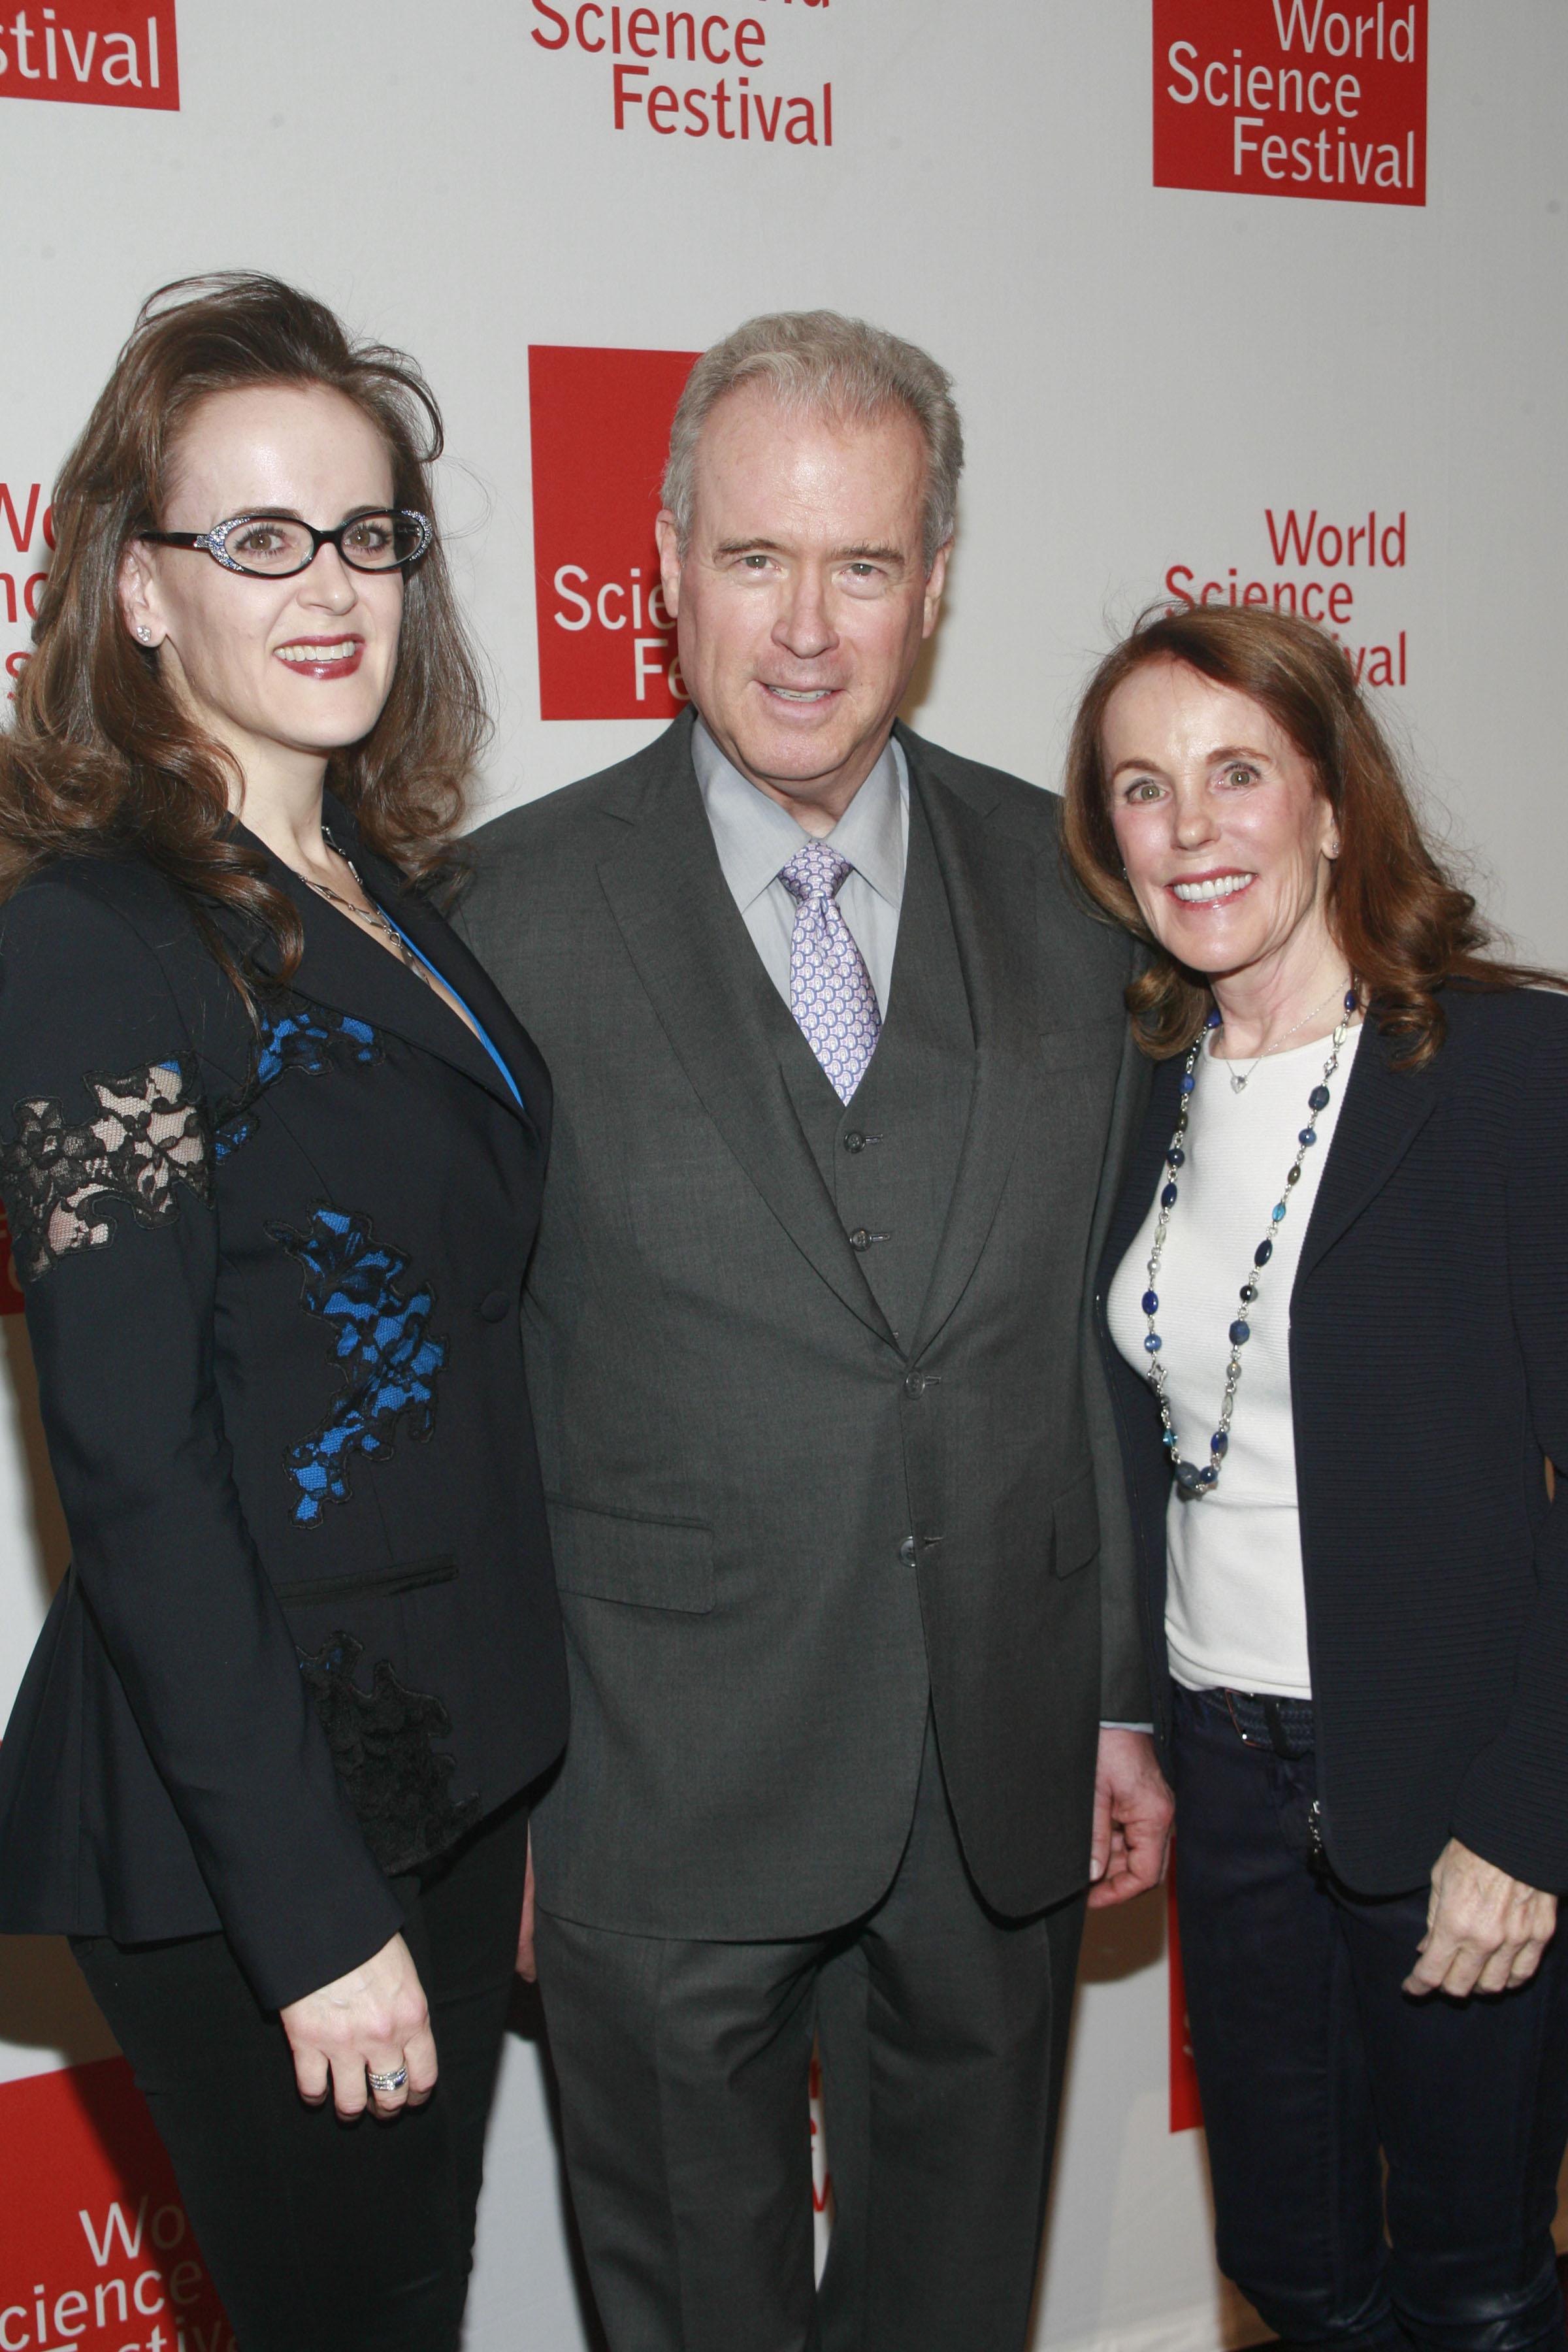 The 2014 World Science Festival Gala